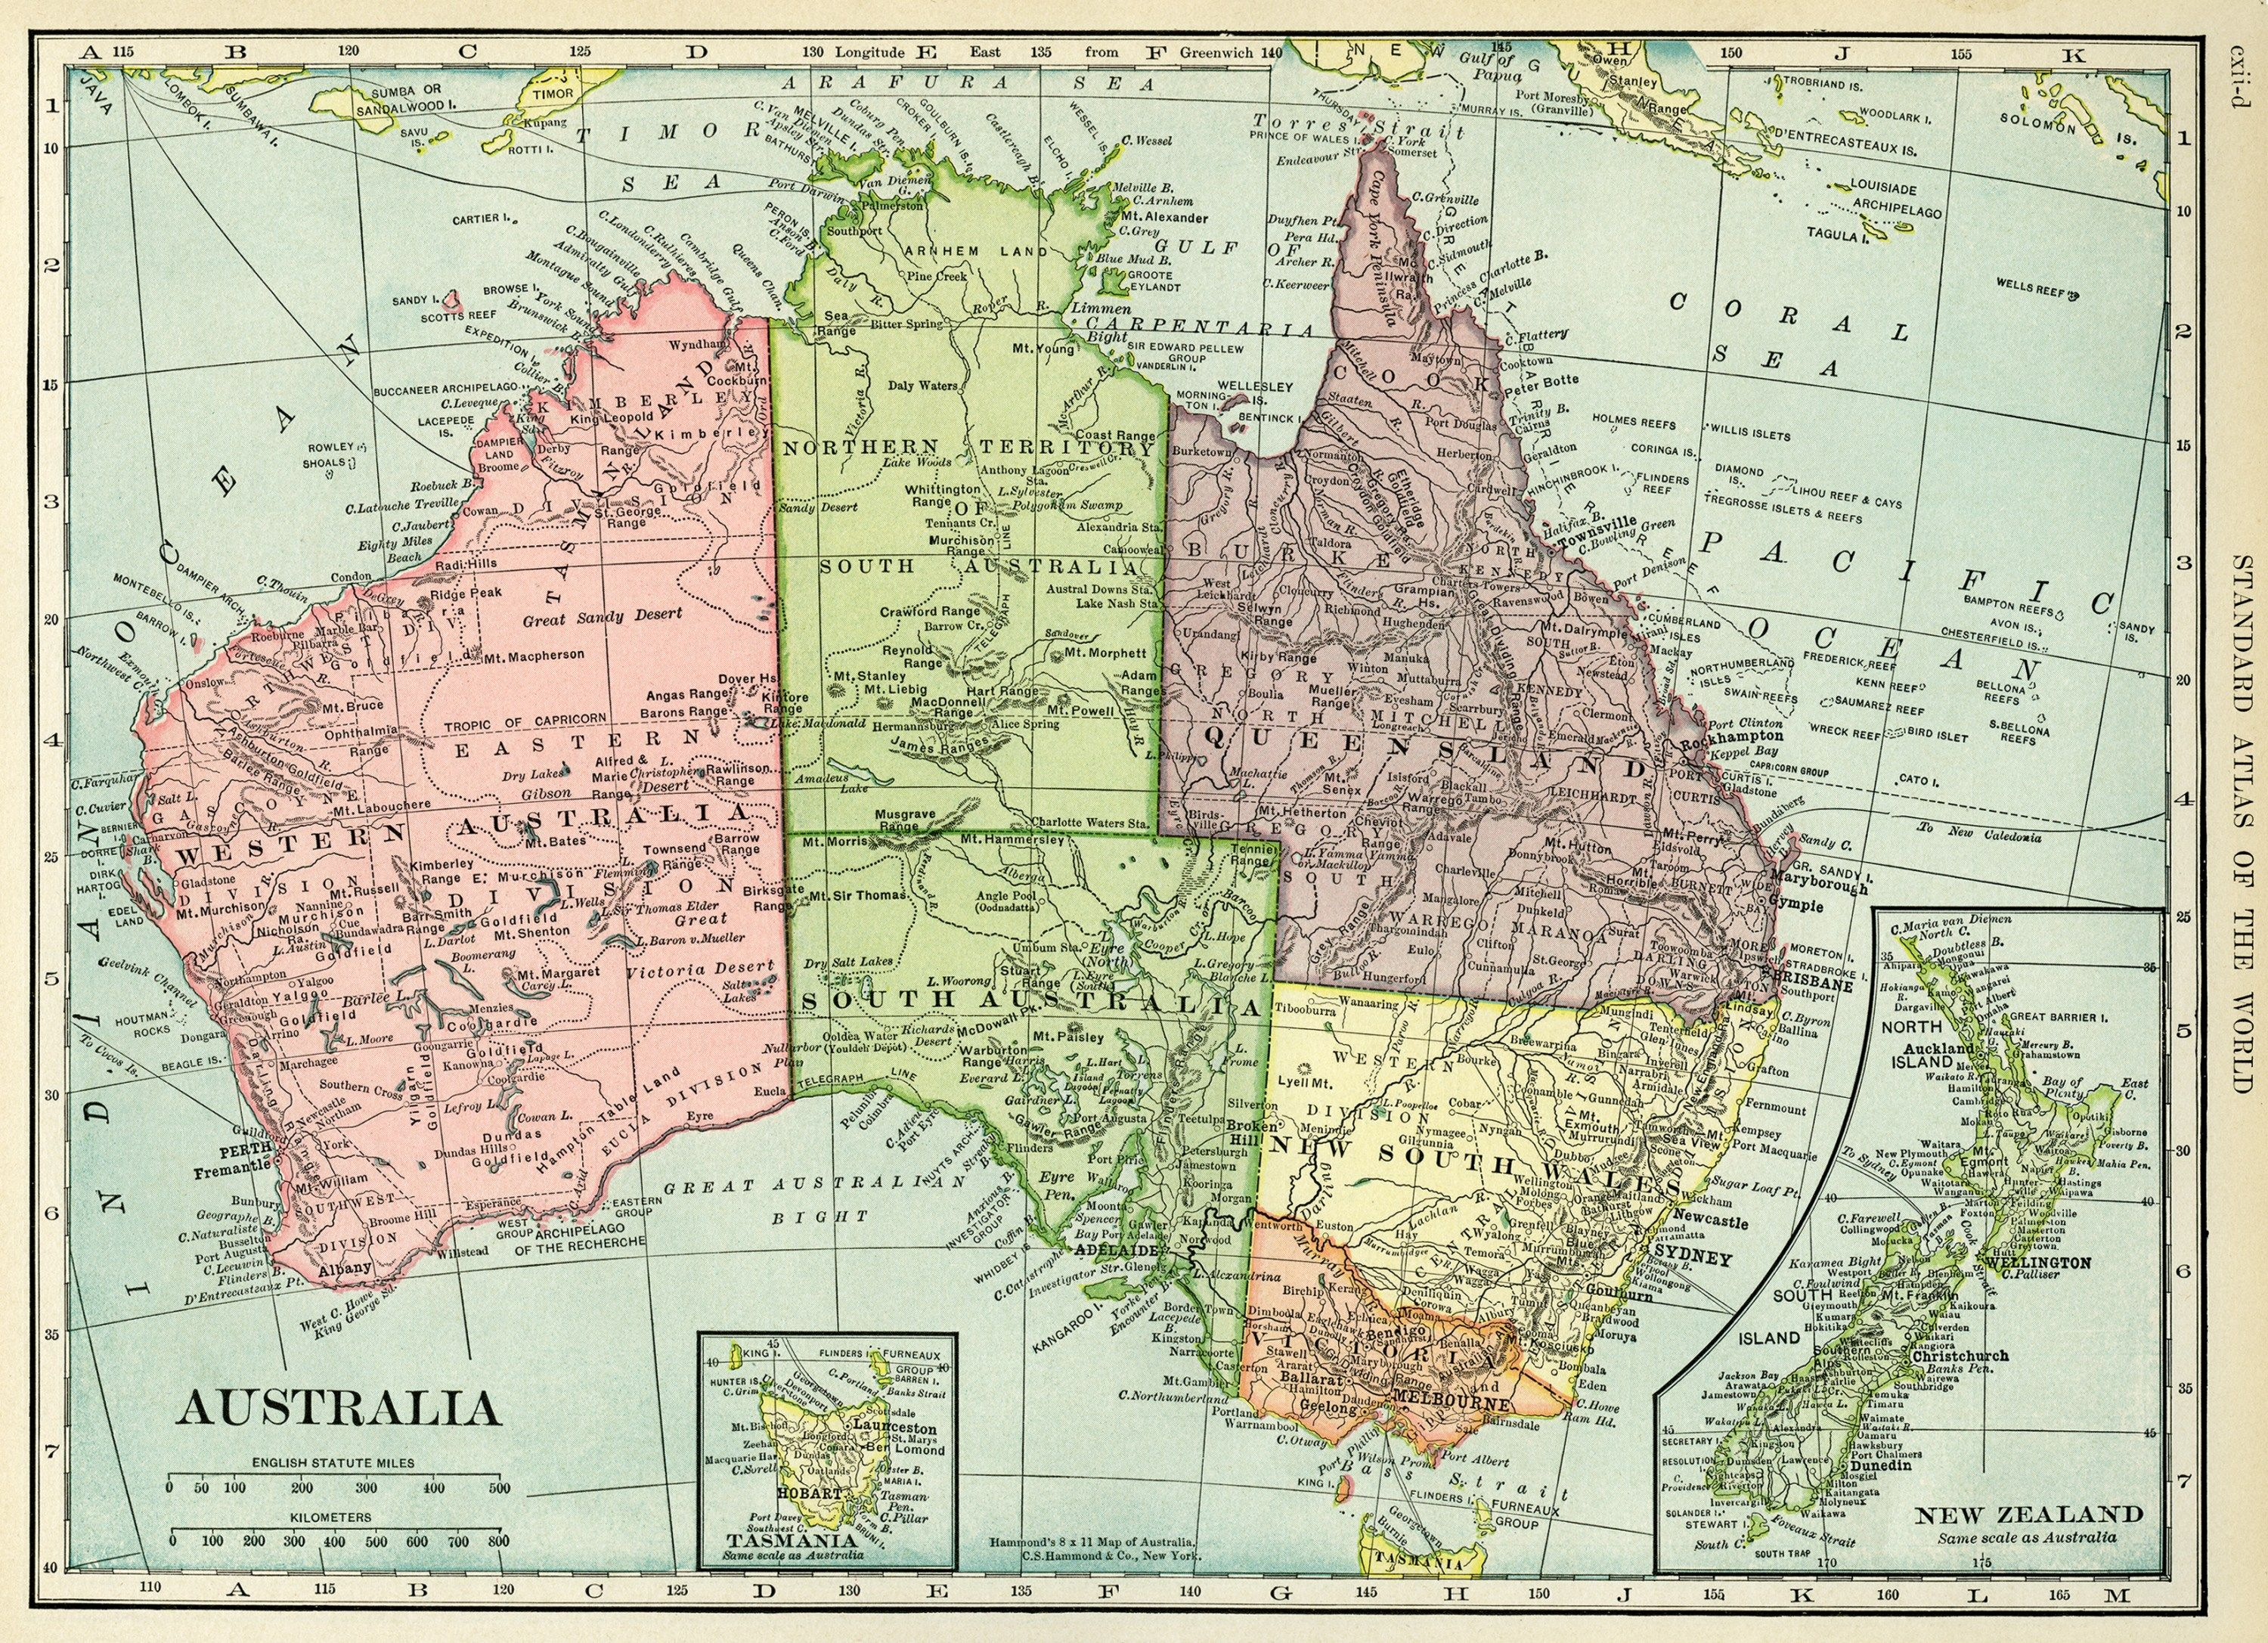 C. S. Hammond map, antique map, history geography Australia, old map ...